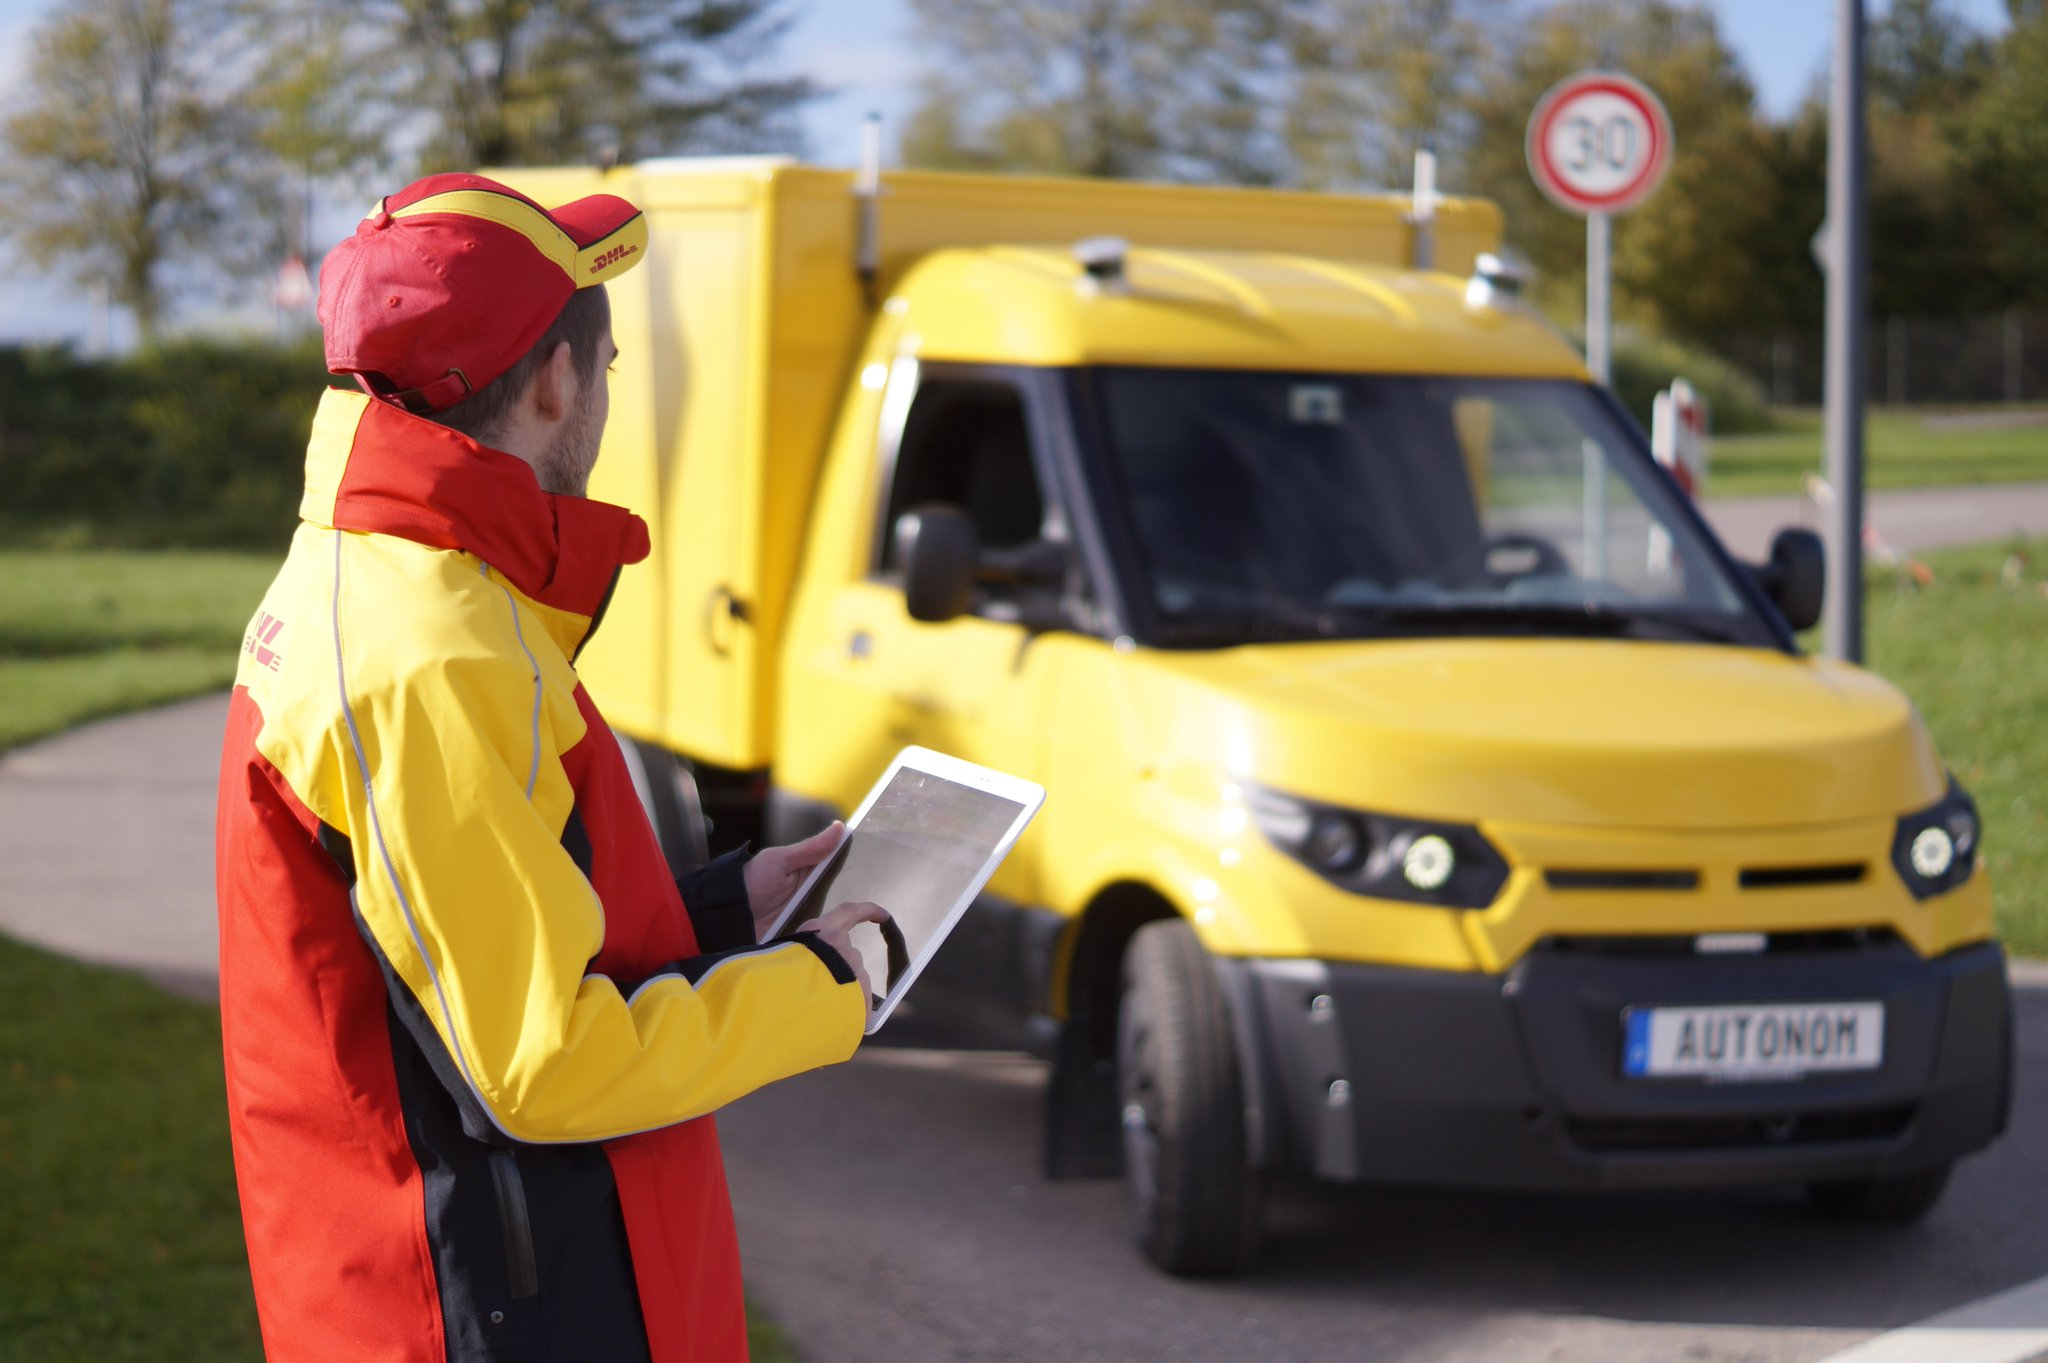 Deutsche Post DHL to deploy self-driving delivery trucks by 2019 https://t.co/vFMQ4KMywR by @etherington https://t.co/CaXeS3uybR